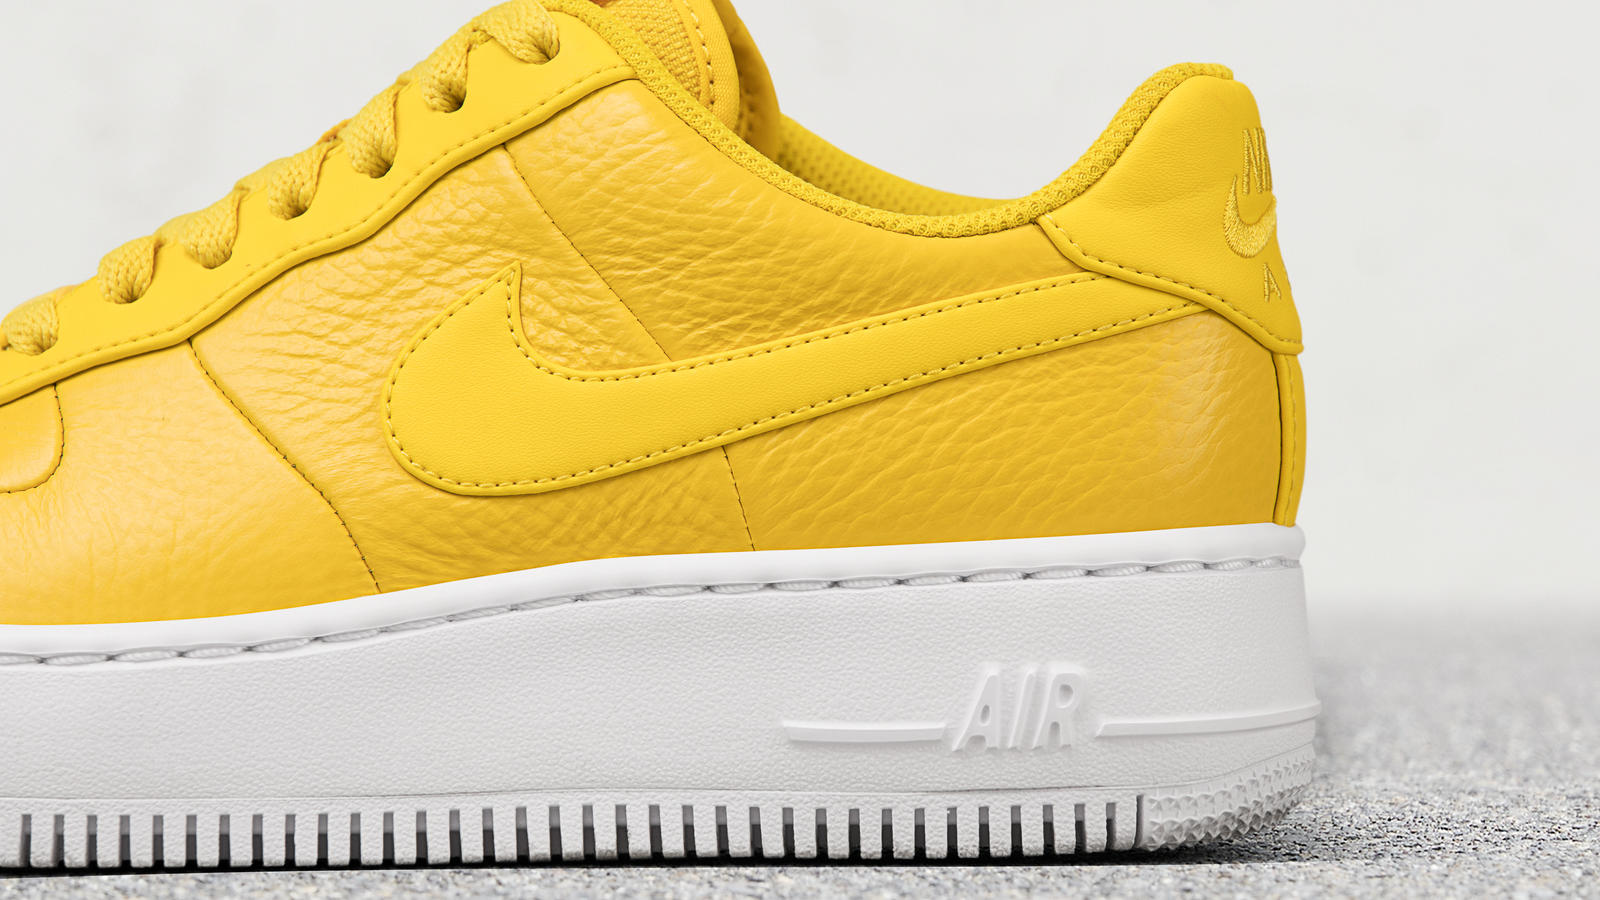 Bread and butter af1 4 hd 1600